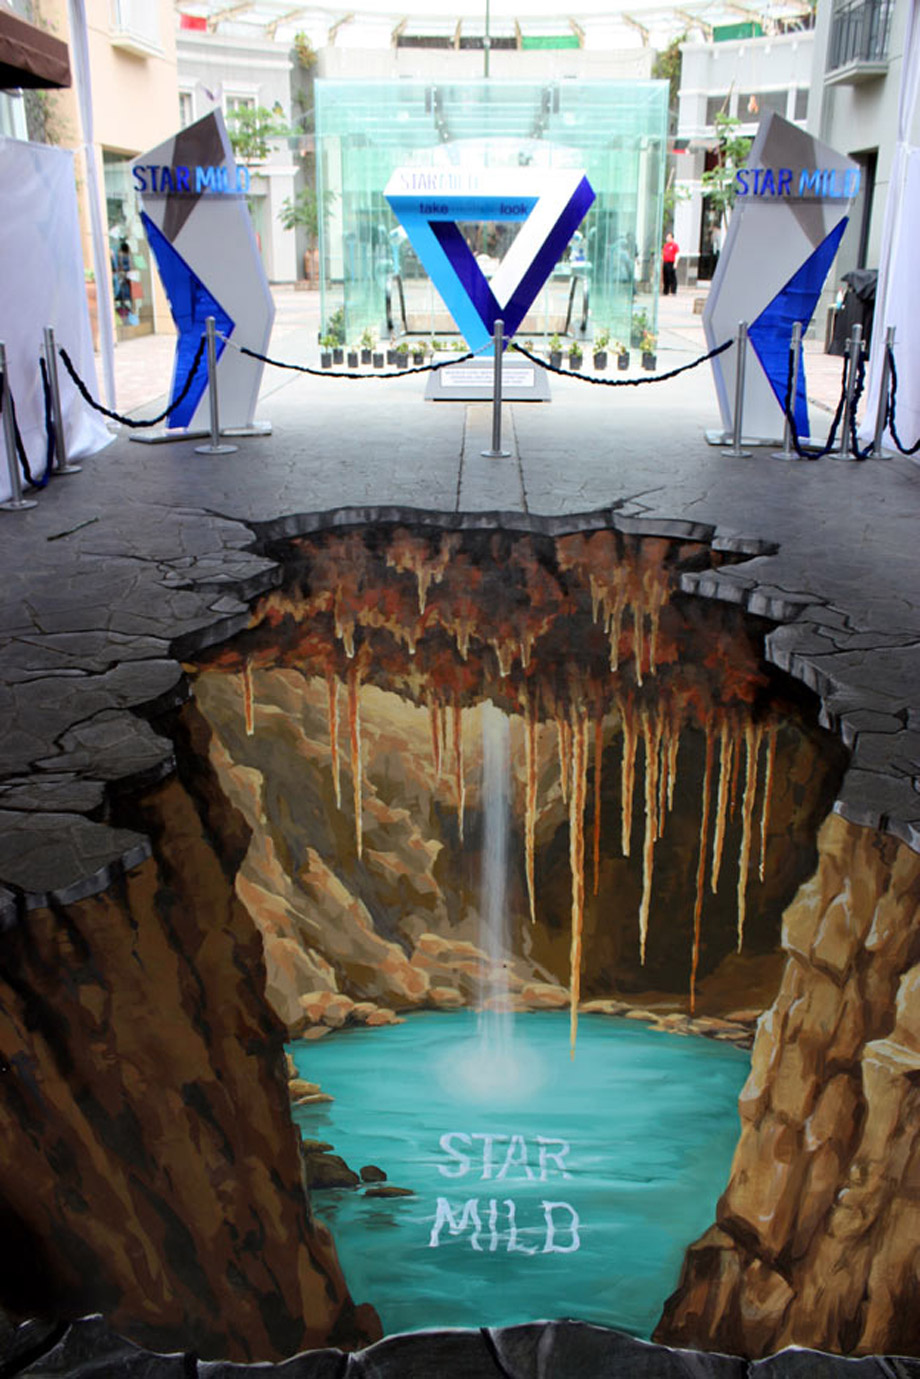 3d street painting pavement painting chalk art